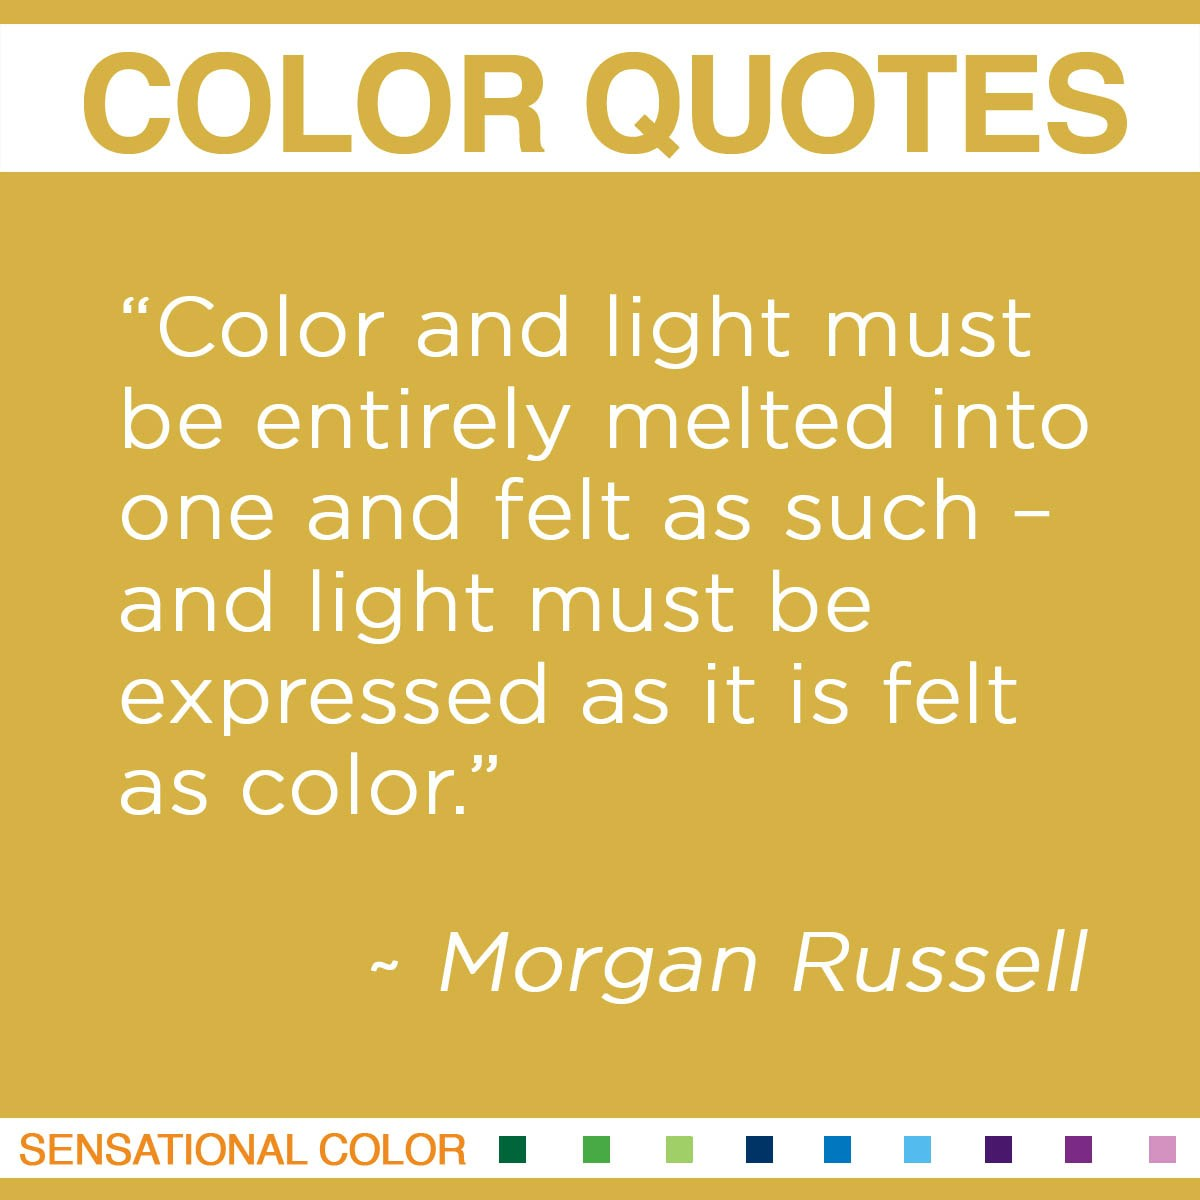 """Color and light must be entirely melted into one and felt as such – and light must be expressed as it is felt as color."" - Morgan Russell"